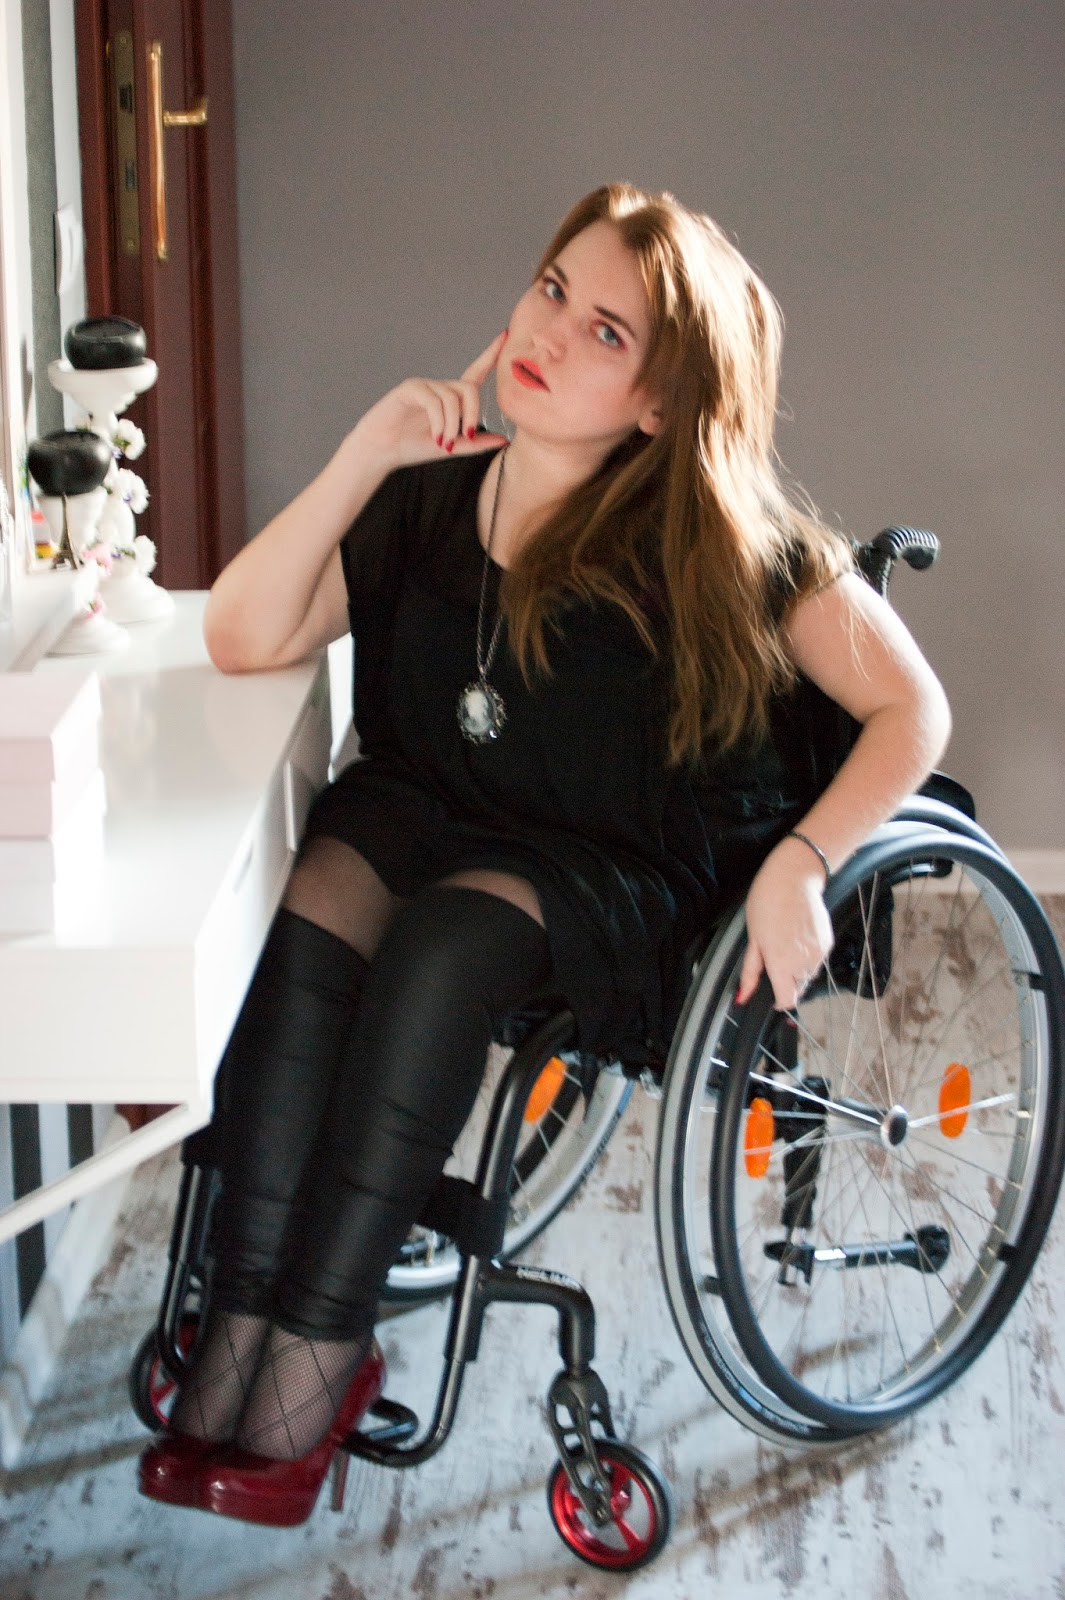 nude girls in wheelchairs